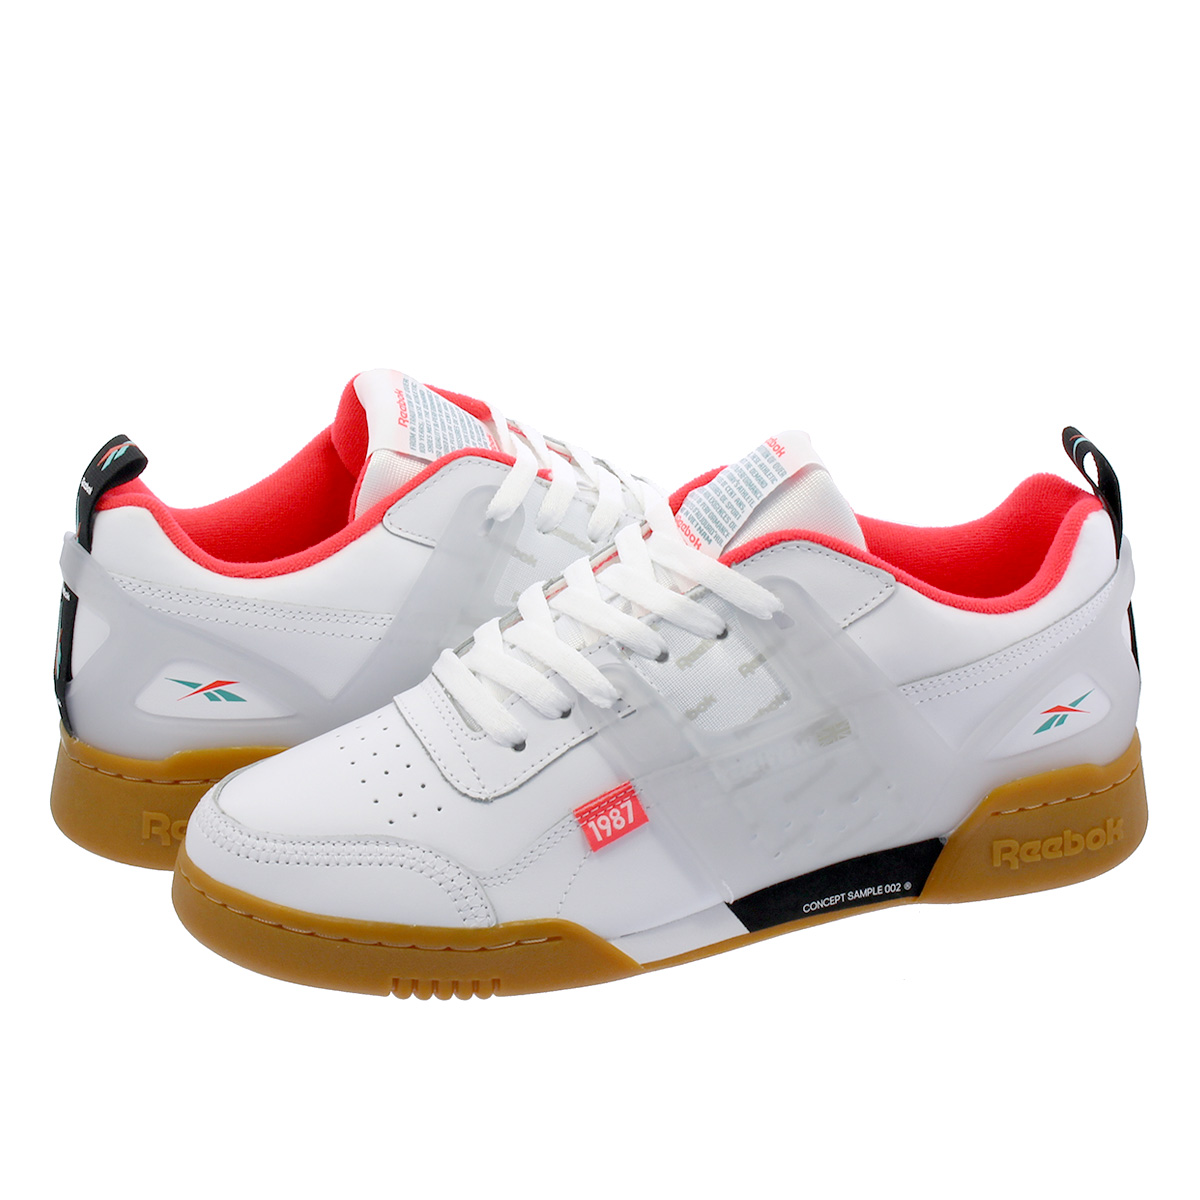 super cheap compares to hot-selling fashion release date: Reebok WORKOUT PLUS ATI Reebok practice game plus ATI WHITE/BLACK/NEON  RED/MINERAL MIST dv5243